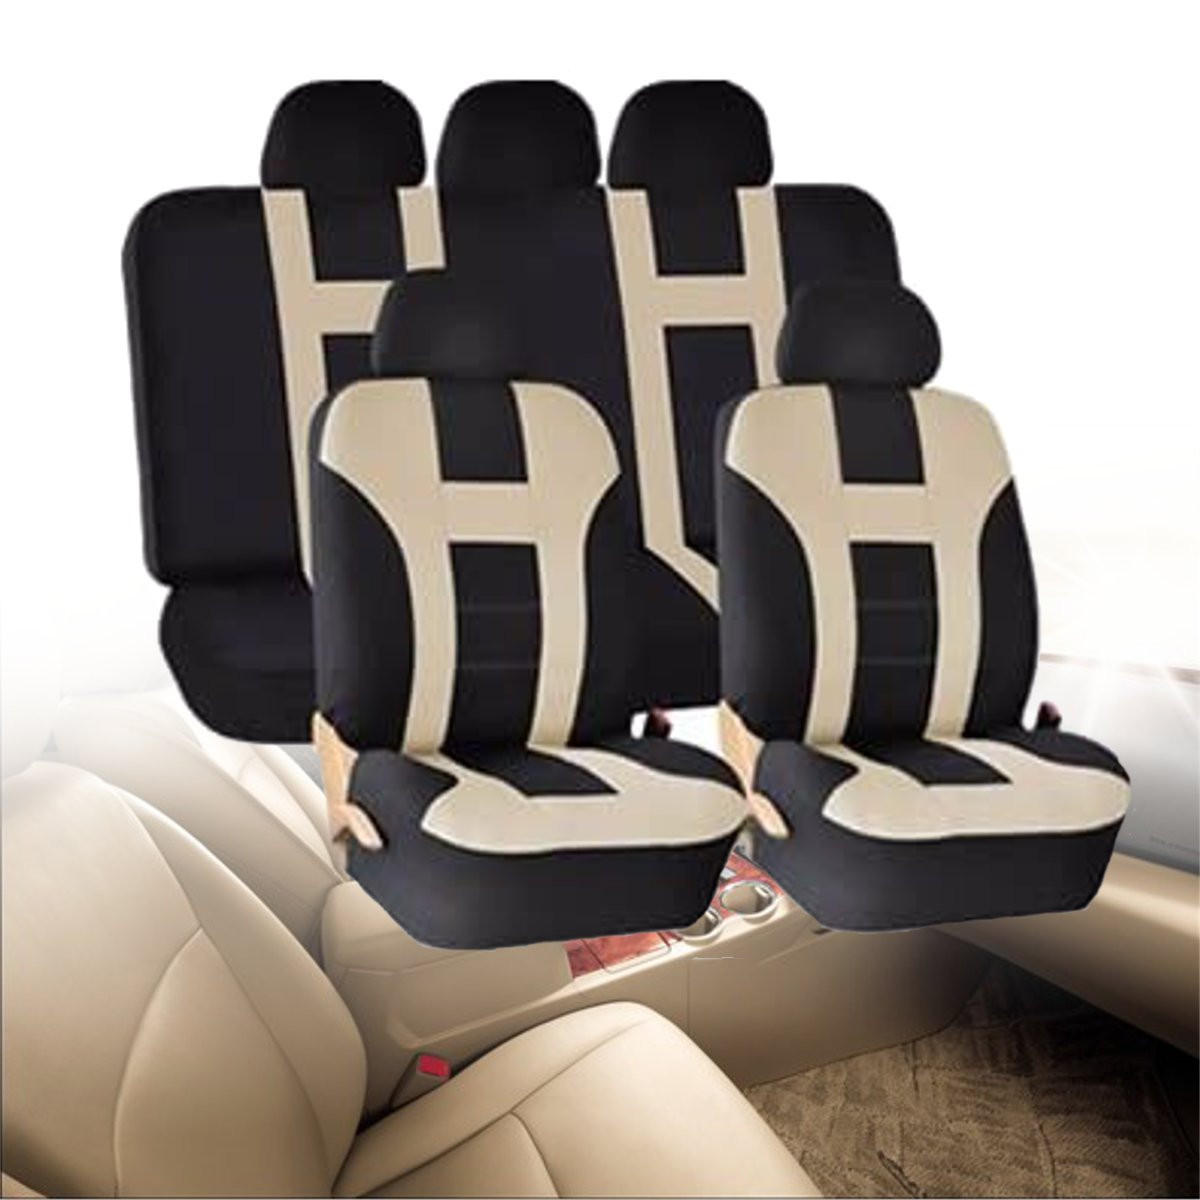 Prime 5M Universal Car Front Seat Back Bench Cover Protectors Full Set Washable Pdpeps Interior Chair Design Pdpepsorg